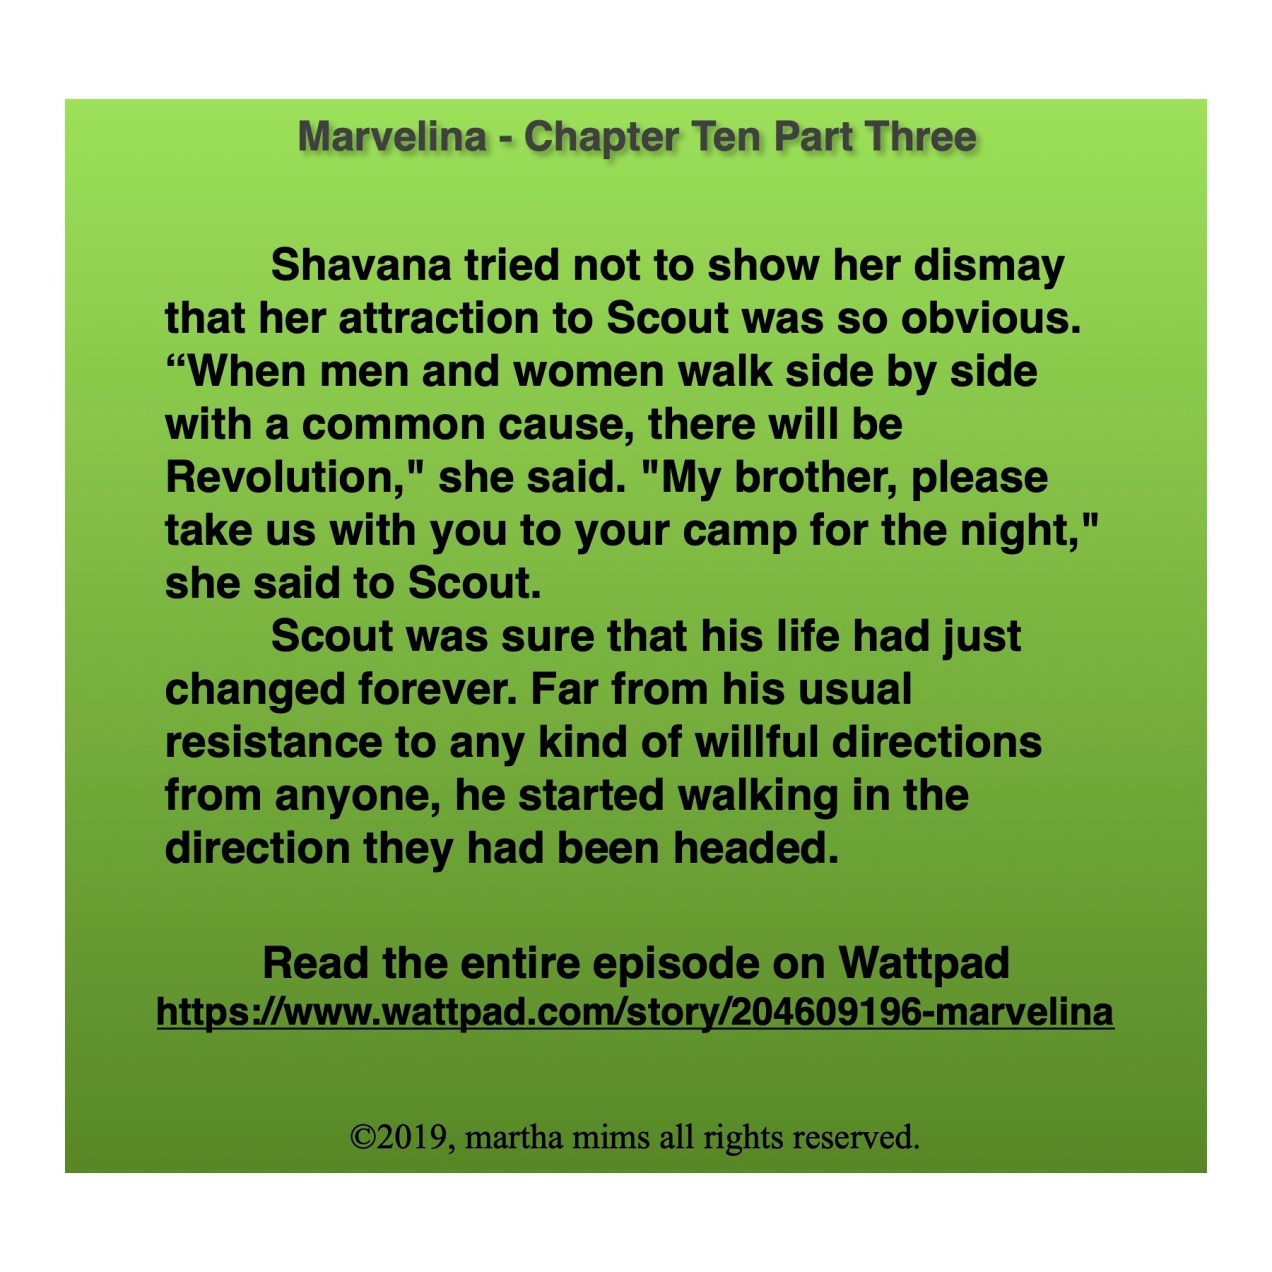 """Shavana tried not to show her dismay that her attraction to Scout was so obvious. """"When men and women walk side by side with a common cause, there will be Revolution,"""" she said. """"My brother, please take us with you to your camp for the night,"""" she said to Scout. Scout was sure that his life had just changed forever. Far from his usual resistance to any kind of willful directions from anyone, he started walking in the direction they had been headed."""